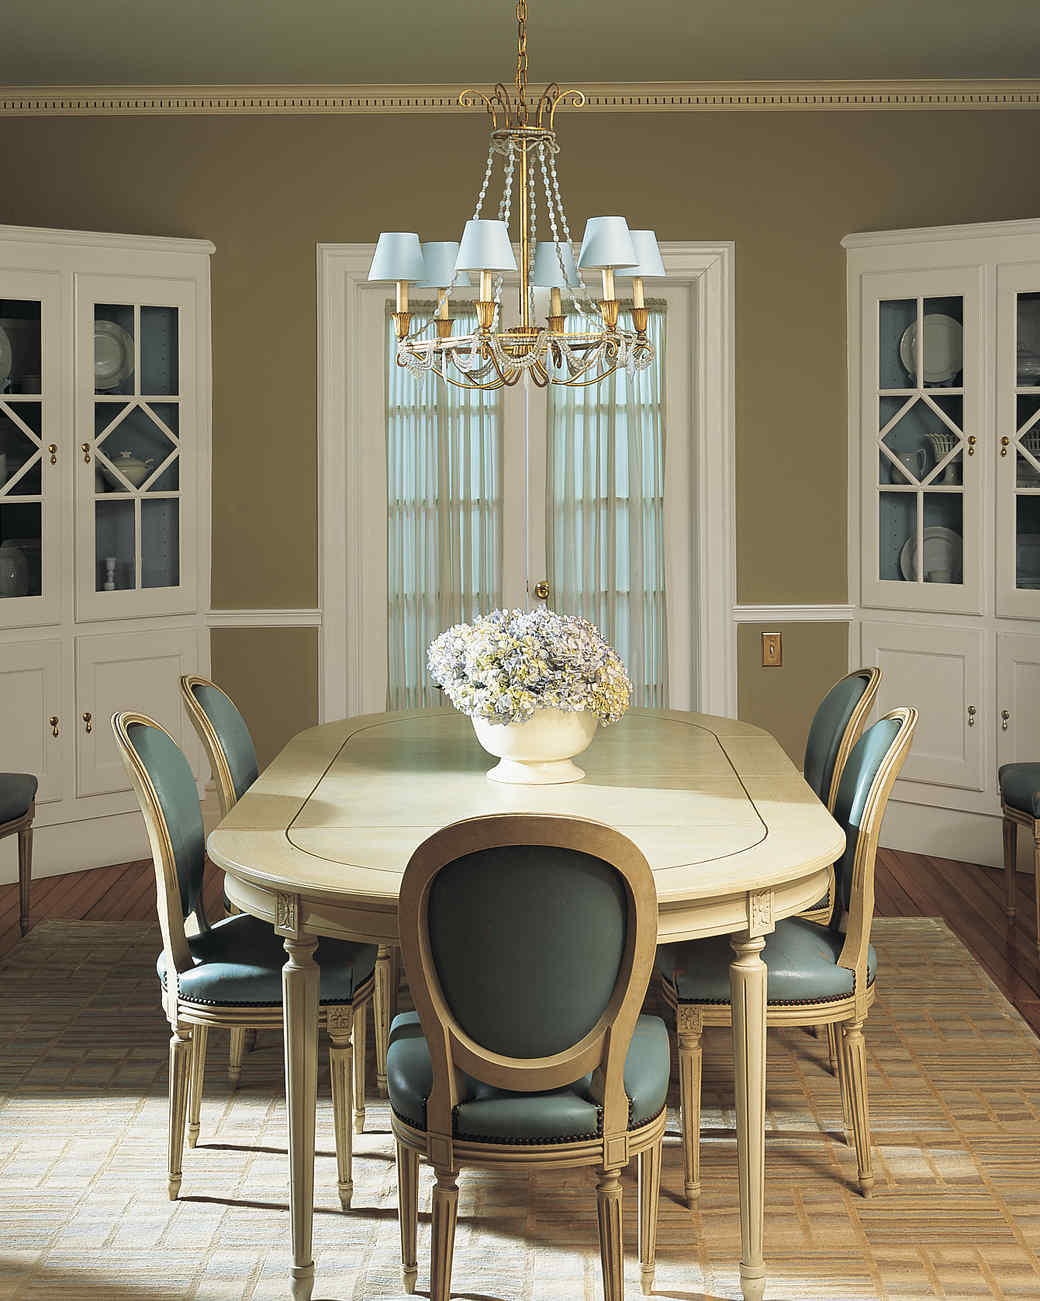 https://assets.marthastewart.com/styles/wmax-520-highdpi/d44/dining-subtle-transformation-01-d100768-0815/dining-subtle-transformation-01-d100768-0815_vert.jpg?itok=dX81RiYO